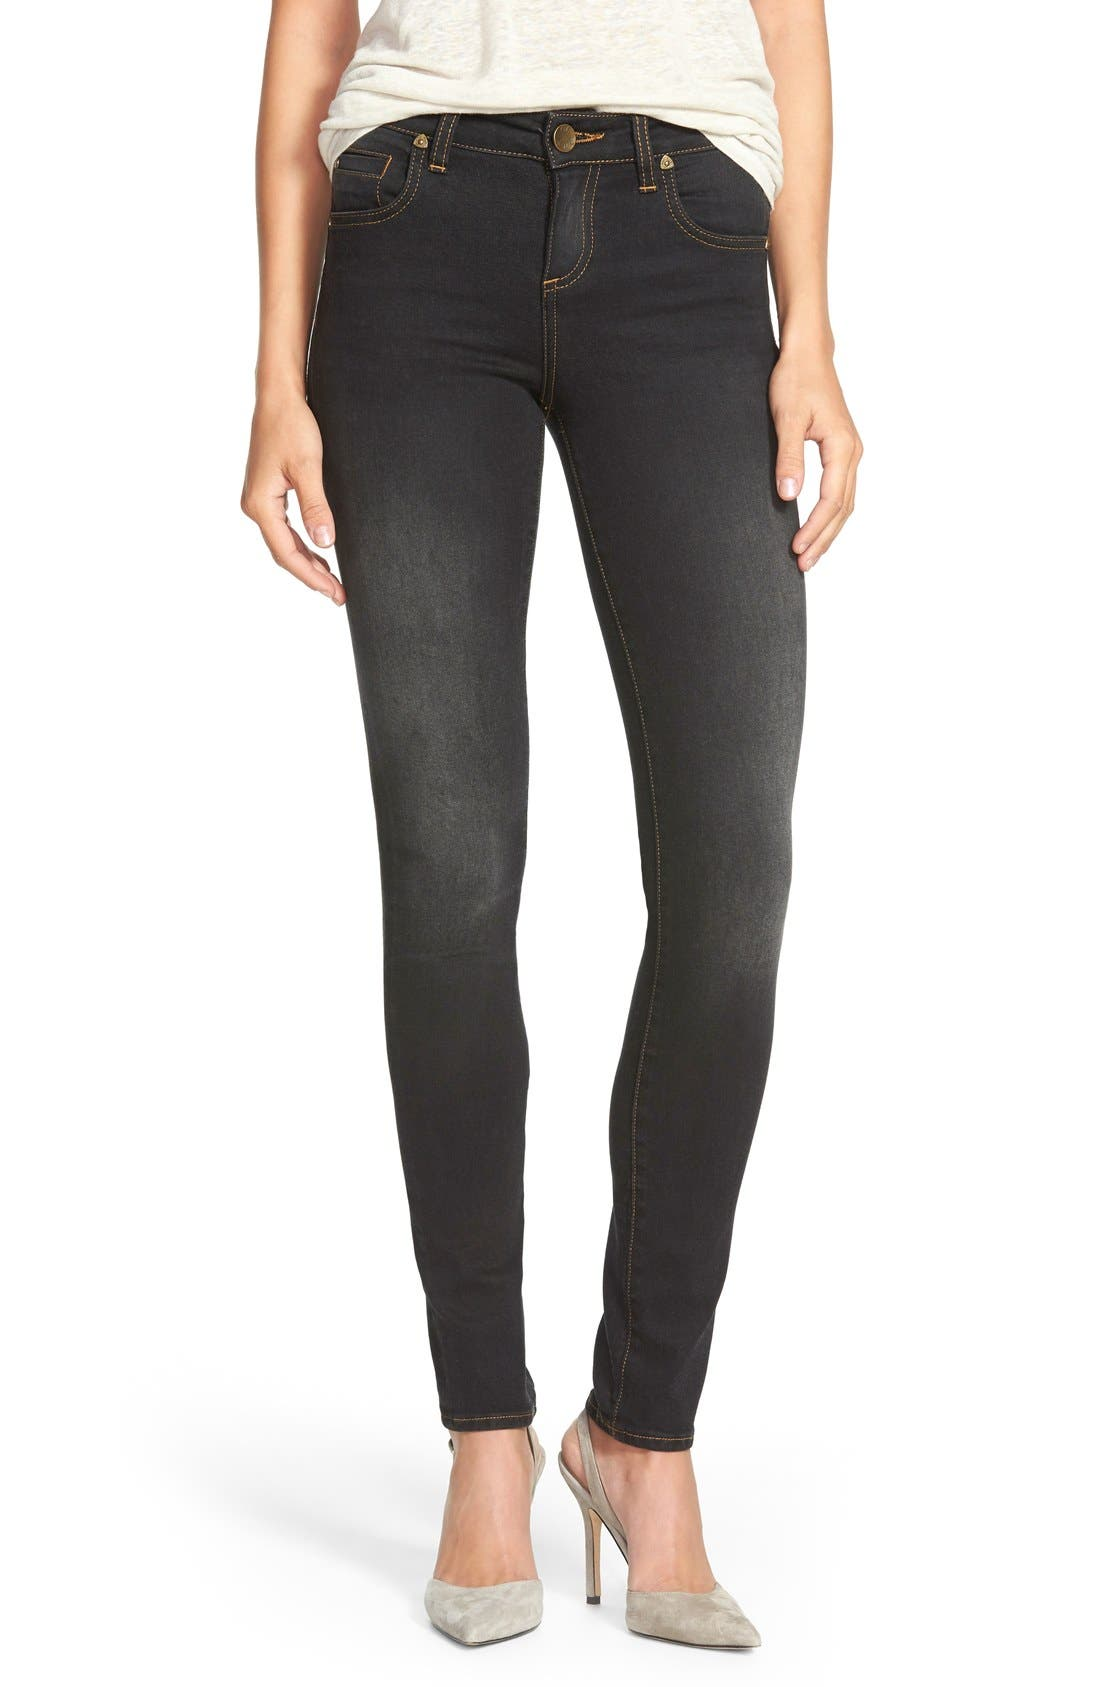 Alternate Image 1 Selected - KUT from the Kloth 'Diana' Stretch Skinny Jeans (Black) (Regular & Petite)